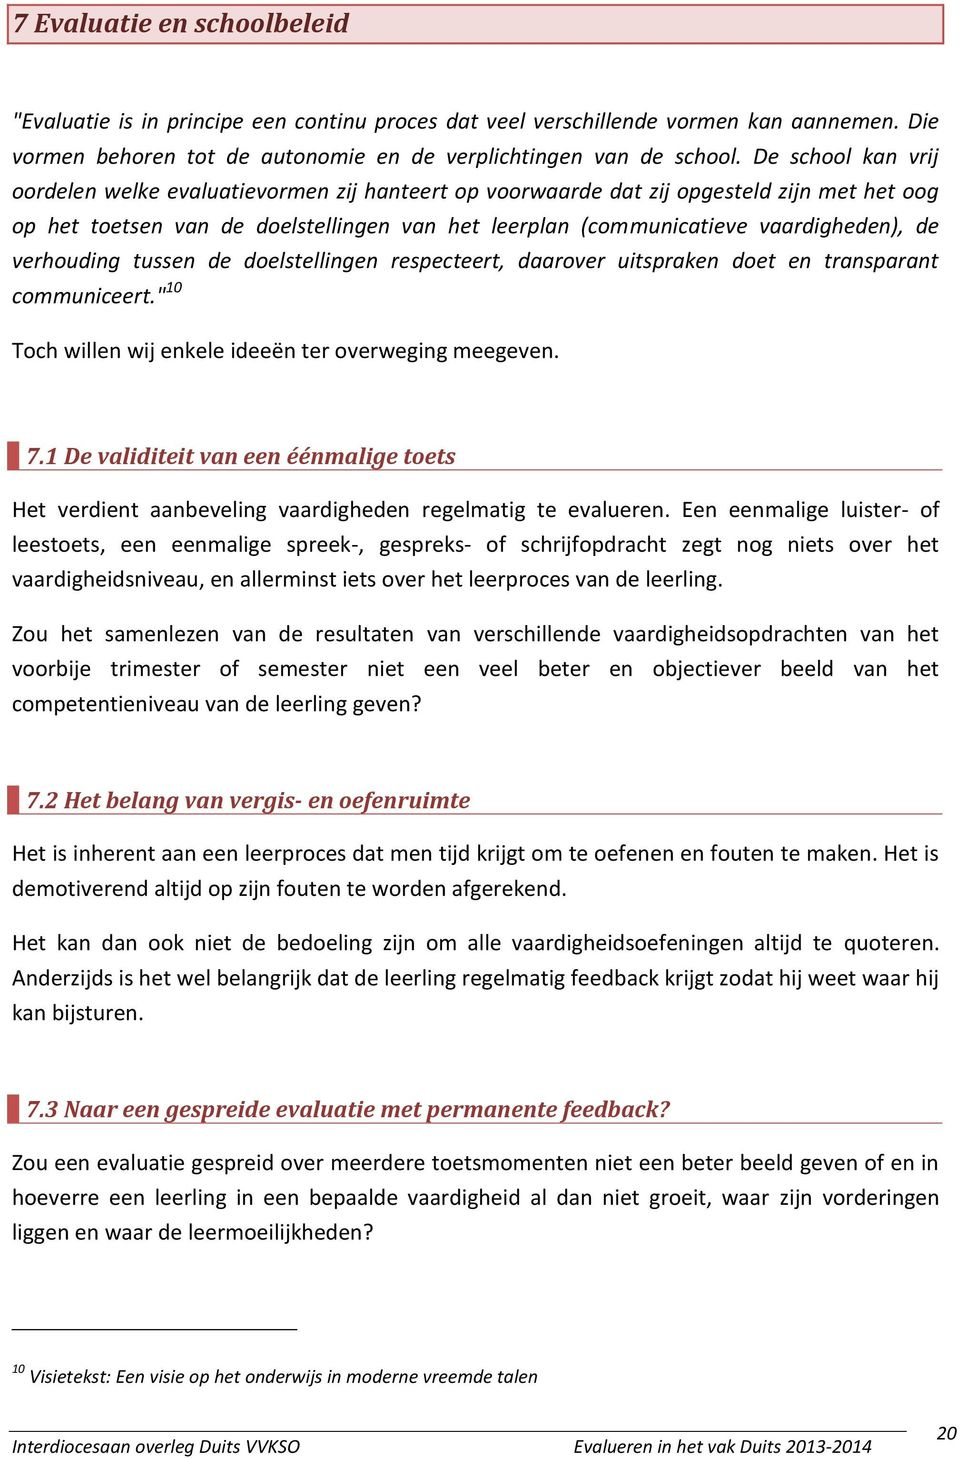 toch in duits